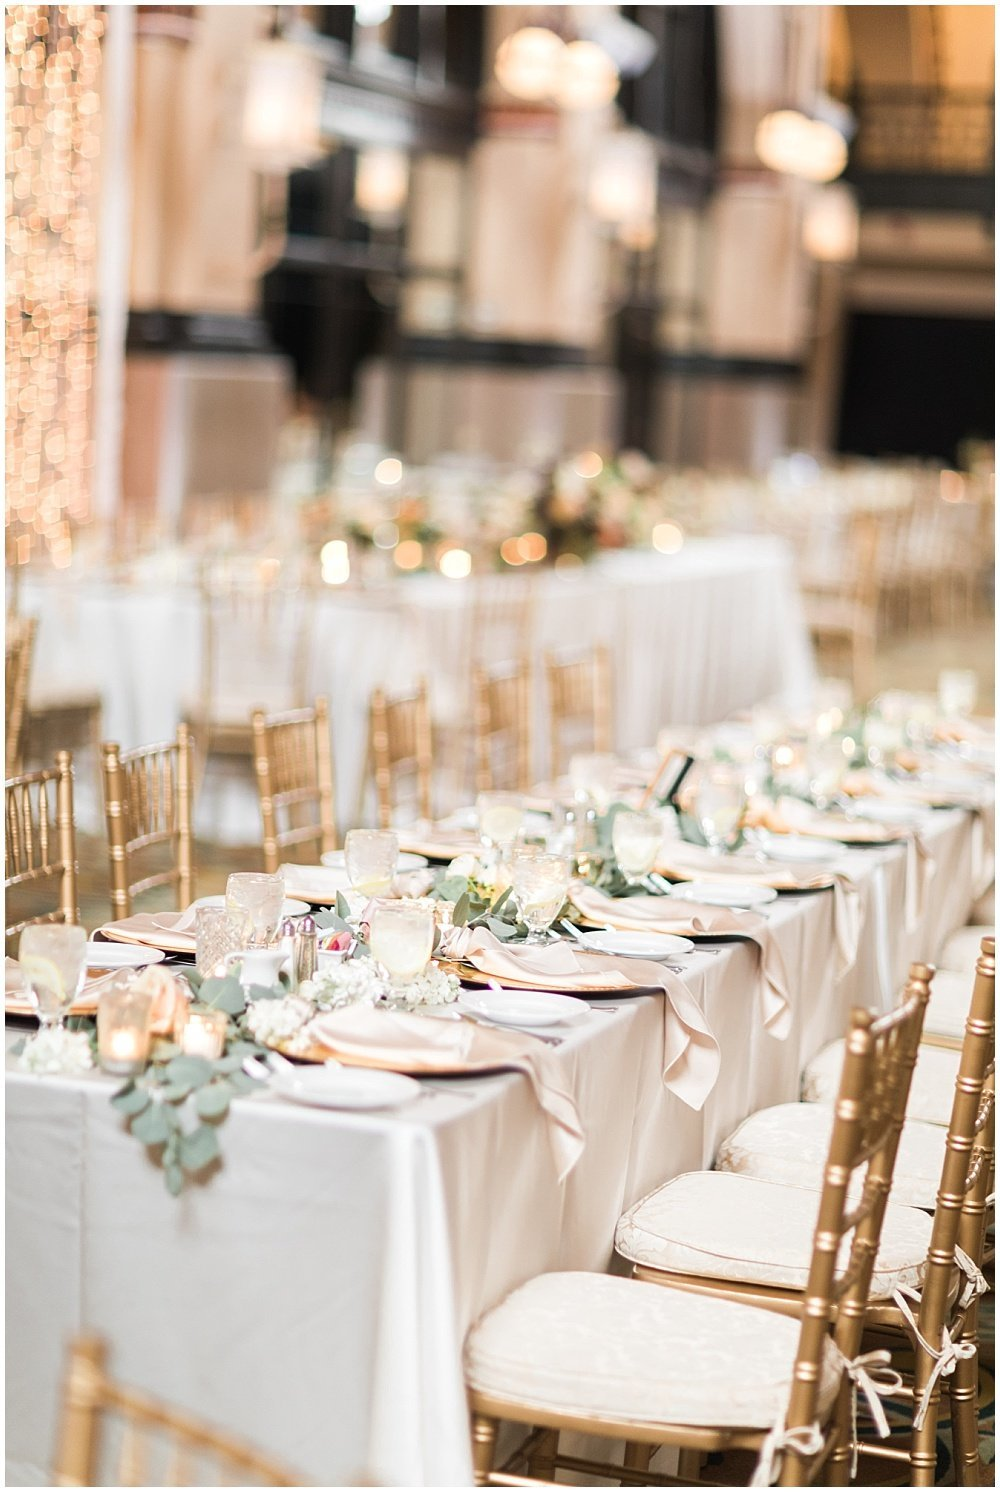 Summer-Mexican-Inspired-Gold-And-Floral-Crowne-Plaza-Indianapolis-Downtown-Union-Station-Wedding-Cory-Jackie-Wedding-Photographers-Jessica-Dum-Wedding-Coordination_photo___0038